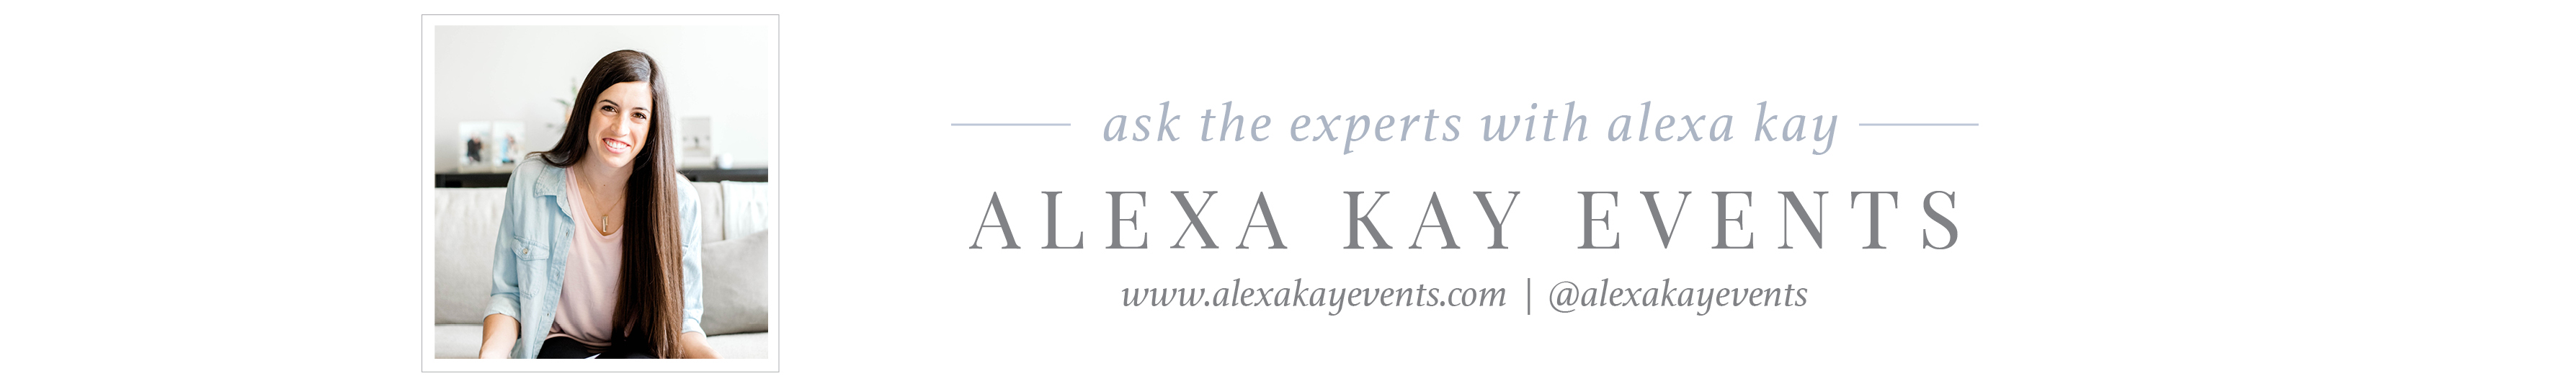 alexa kay events wedding planner